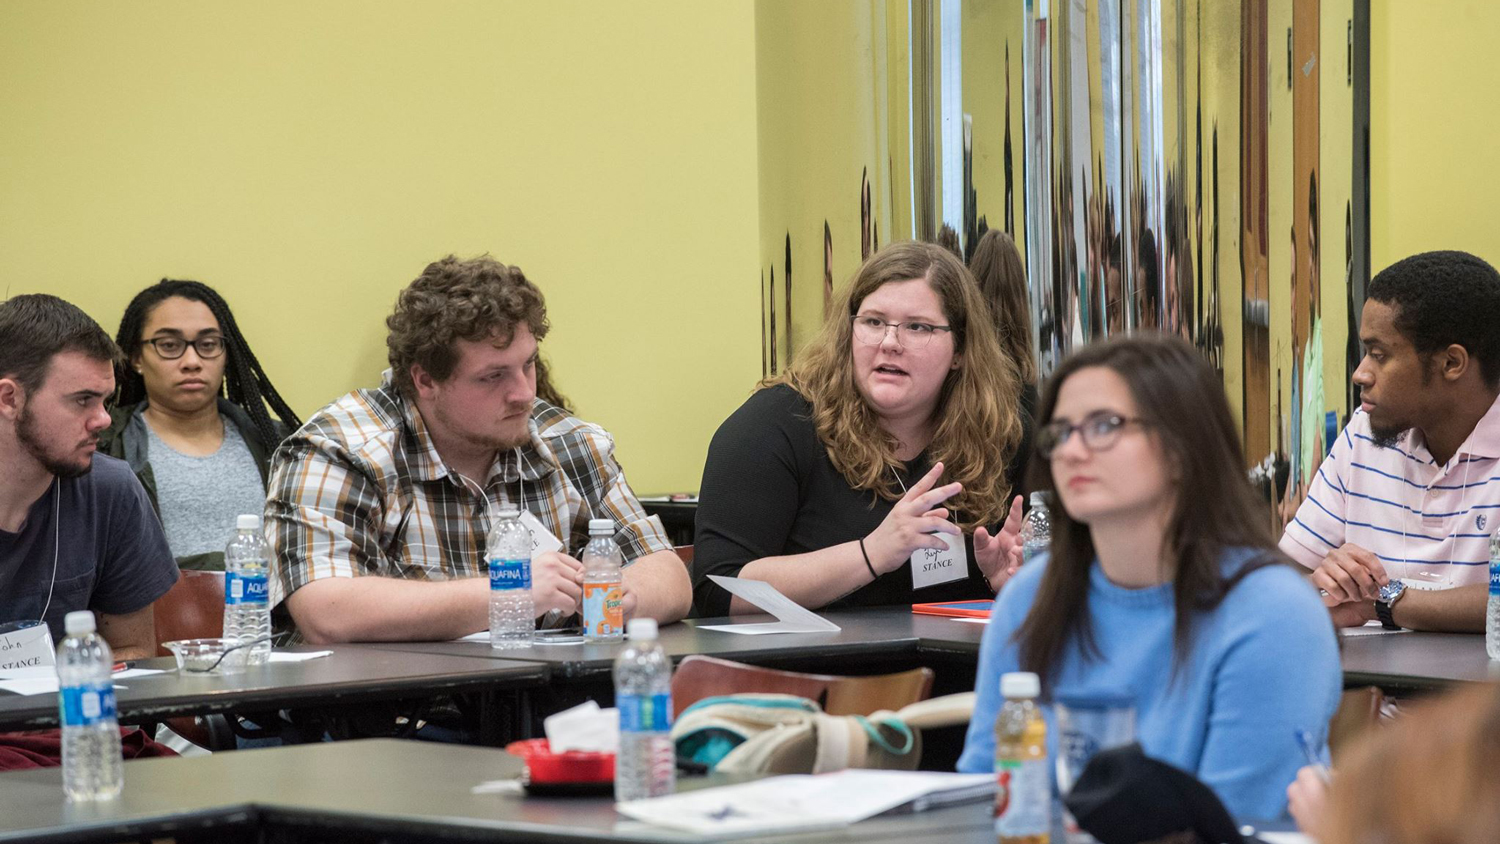 students discussing in a classroom